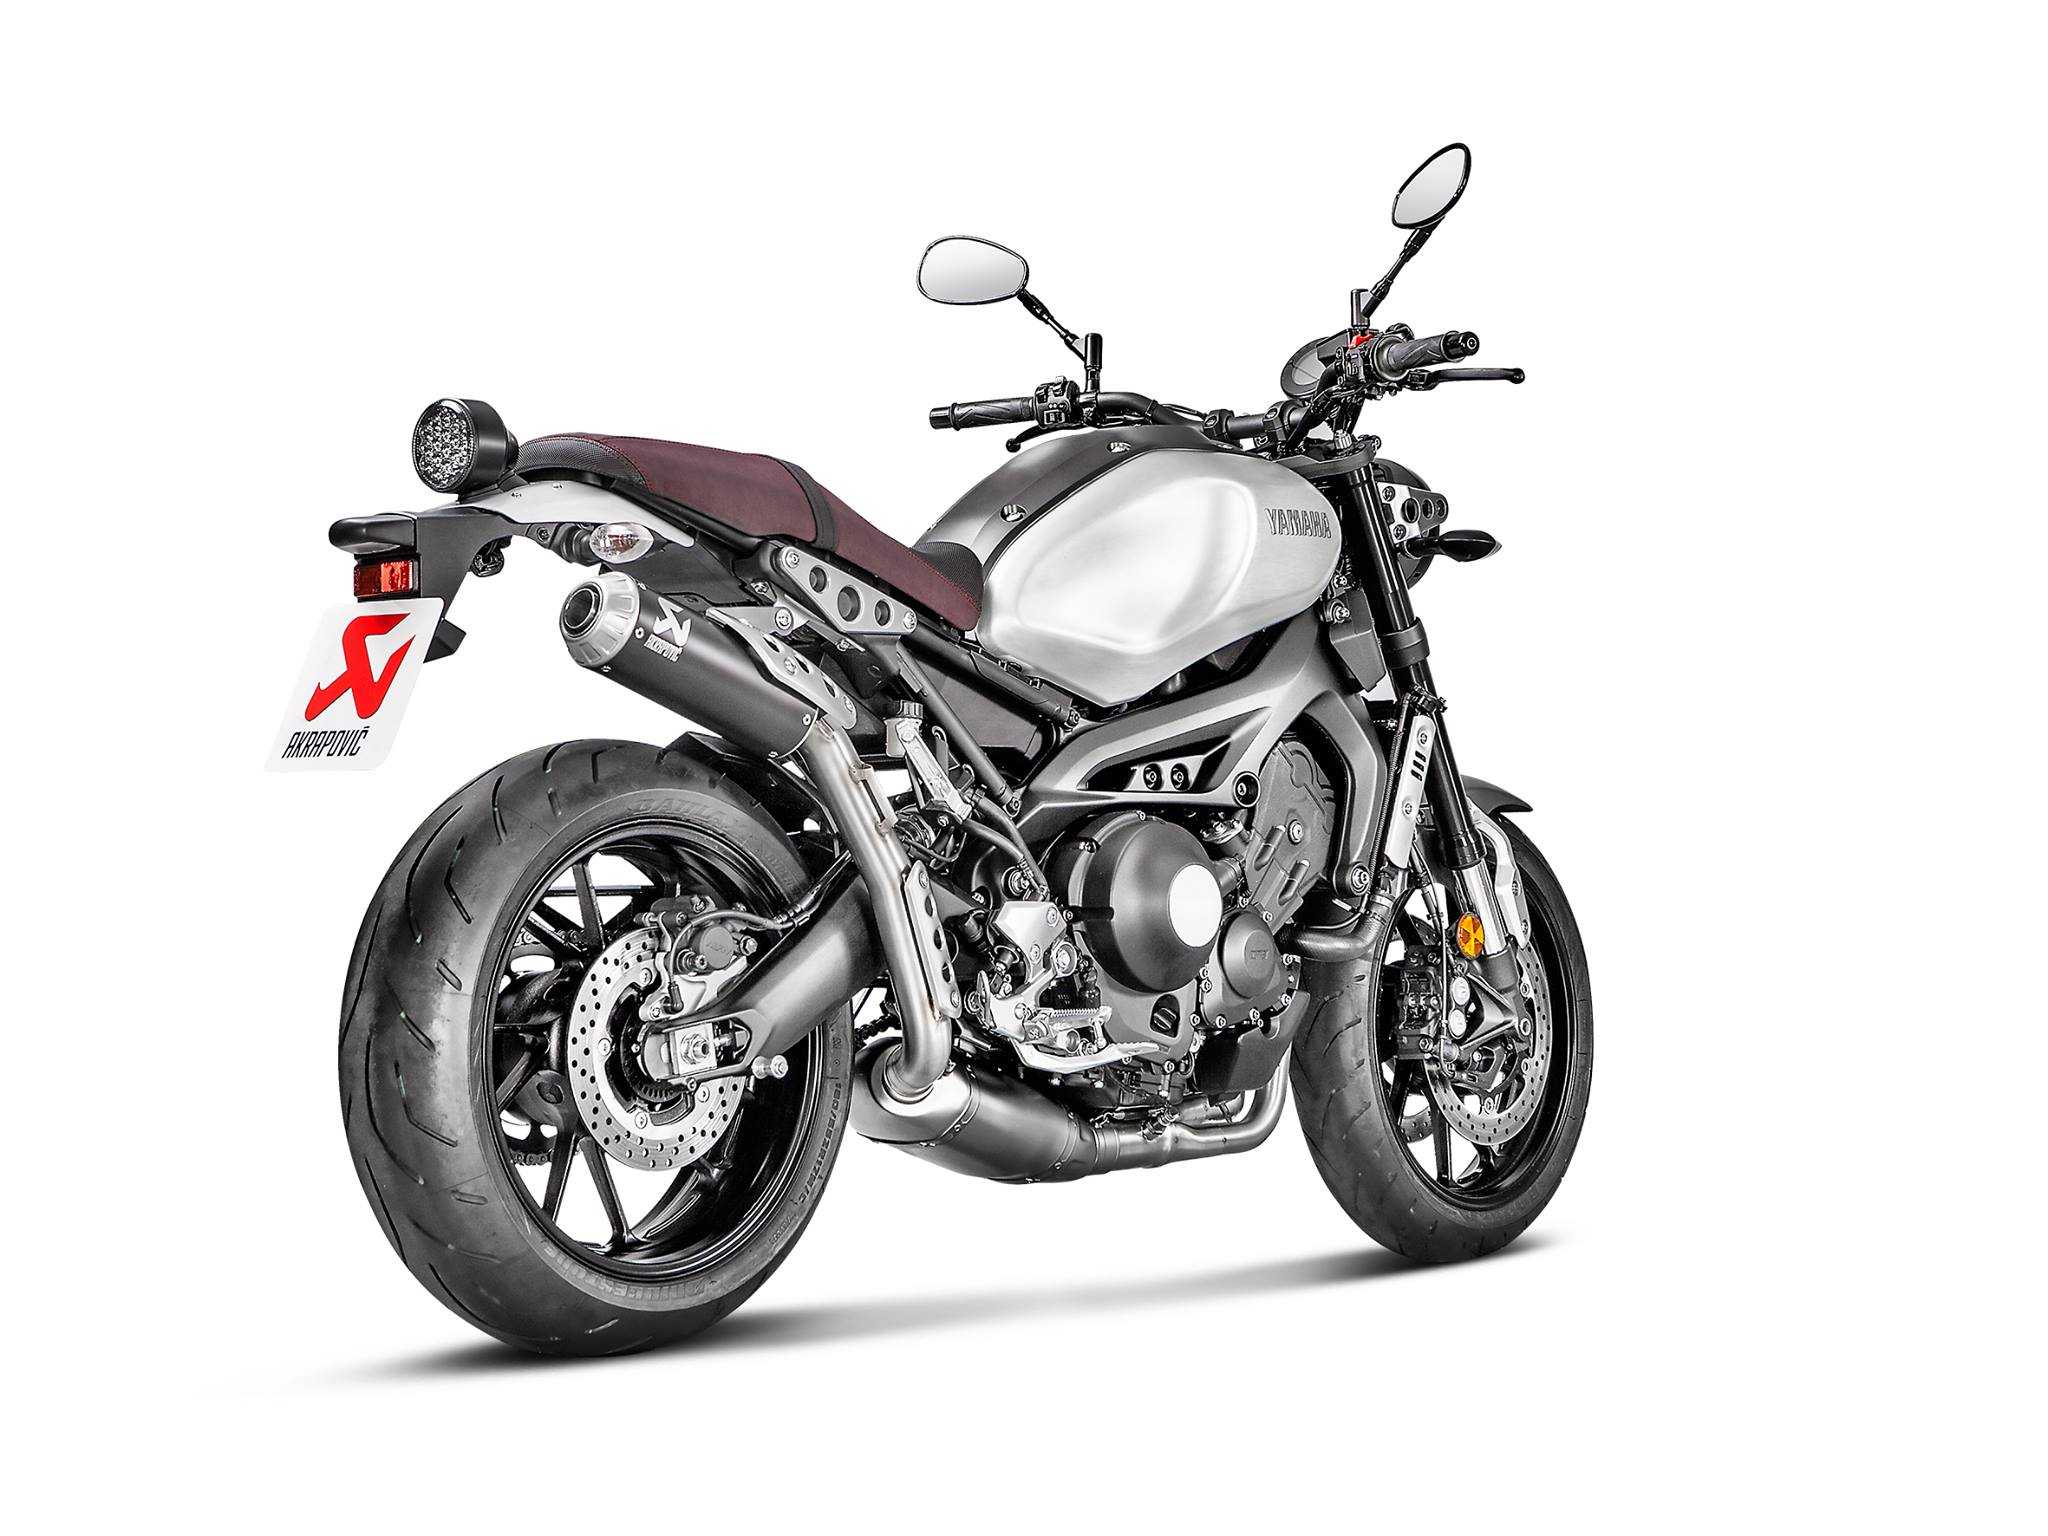 New Akrapovic Exhaust For The Yamaha XSR900